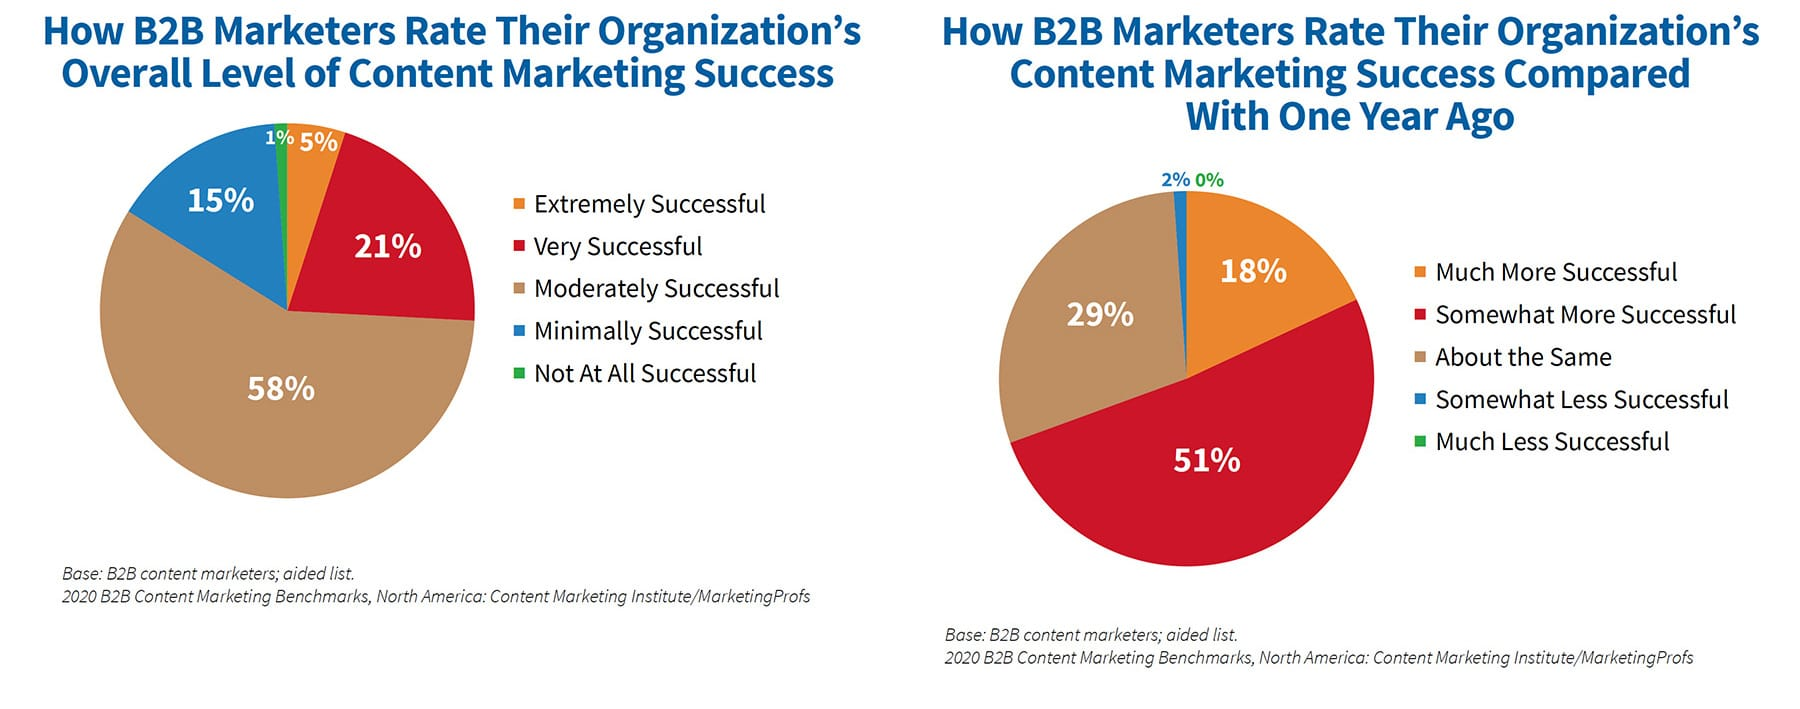 Overall success with content marketing is similar to that reported for the last 3 years, with the largest percentage saying their organization is moderately successful.